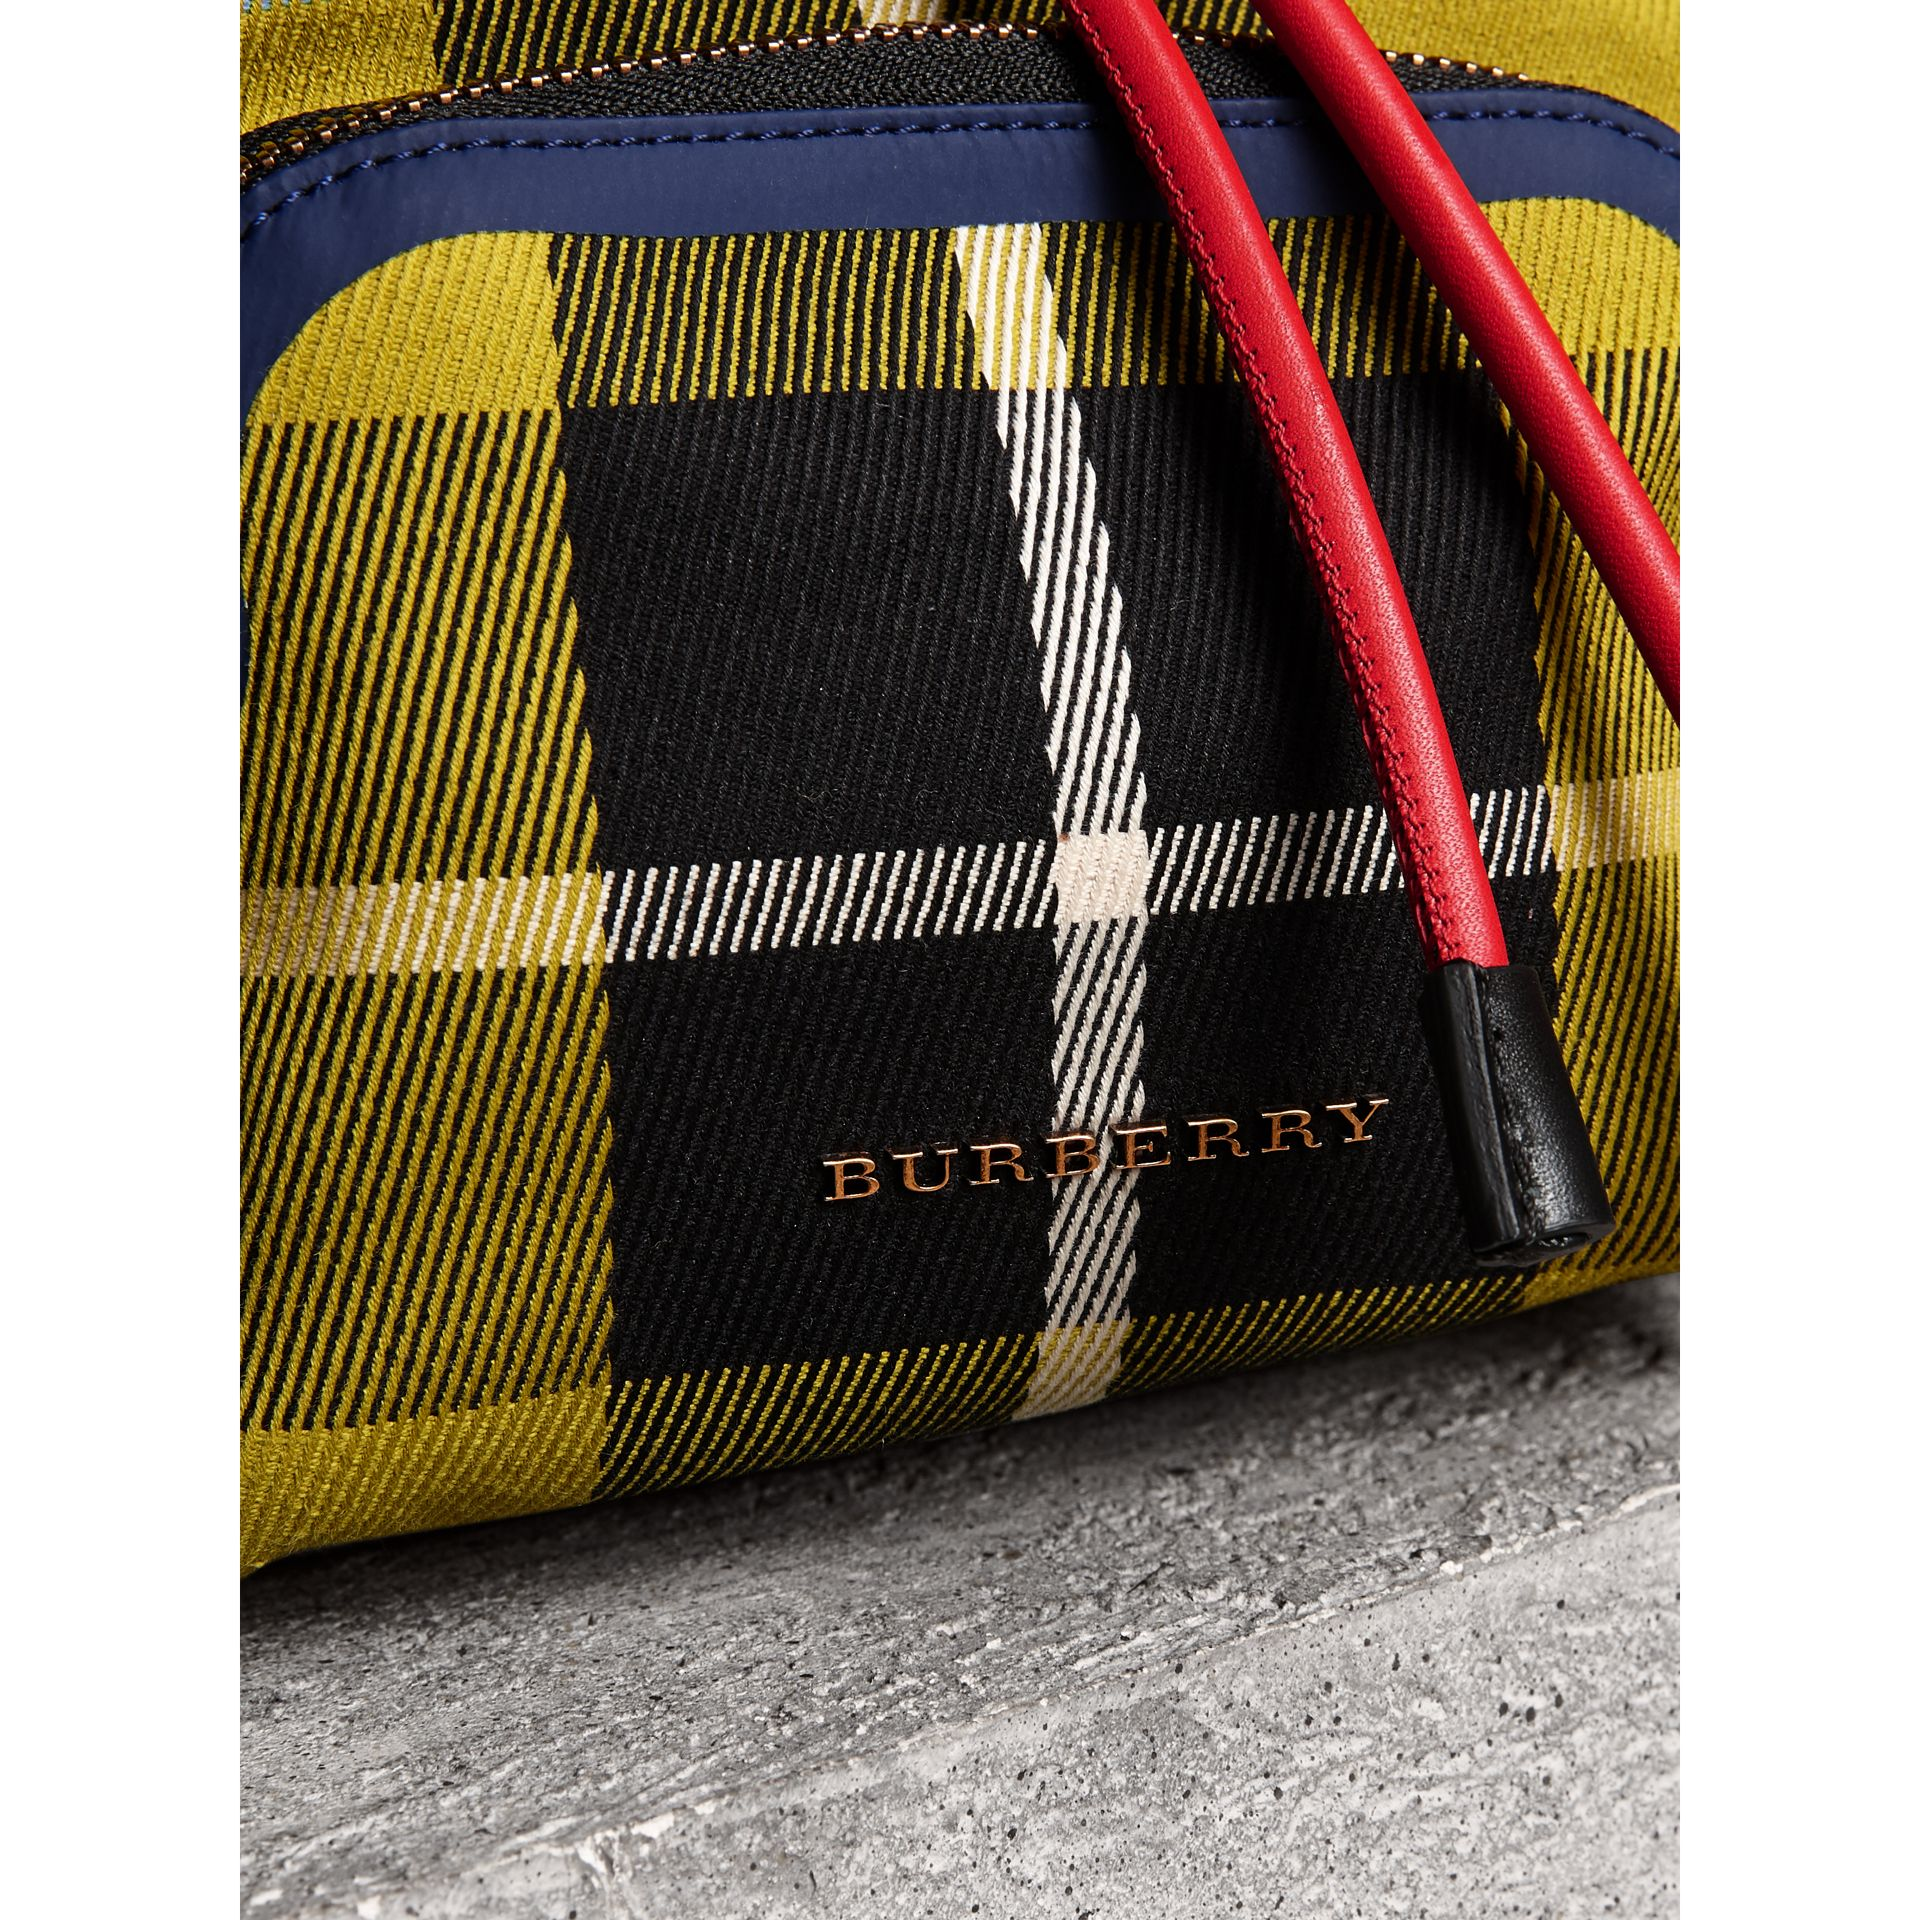 The Small Rucksack in Check Cotton and Leather in Flax Yellow - Women | Burberry - gallery image 1